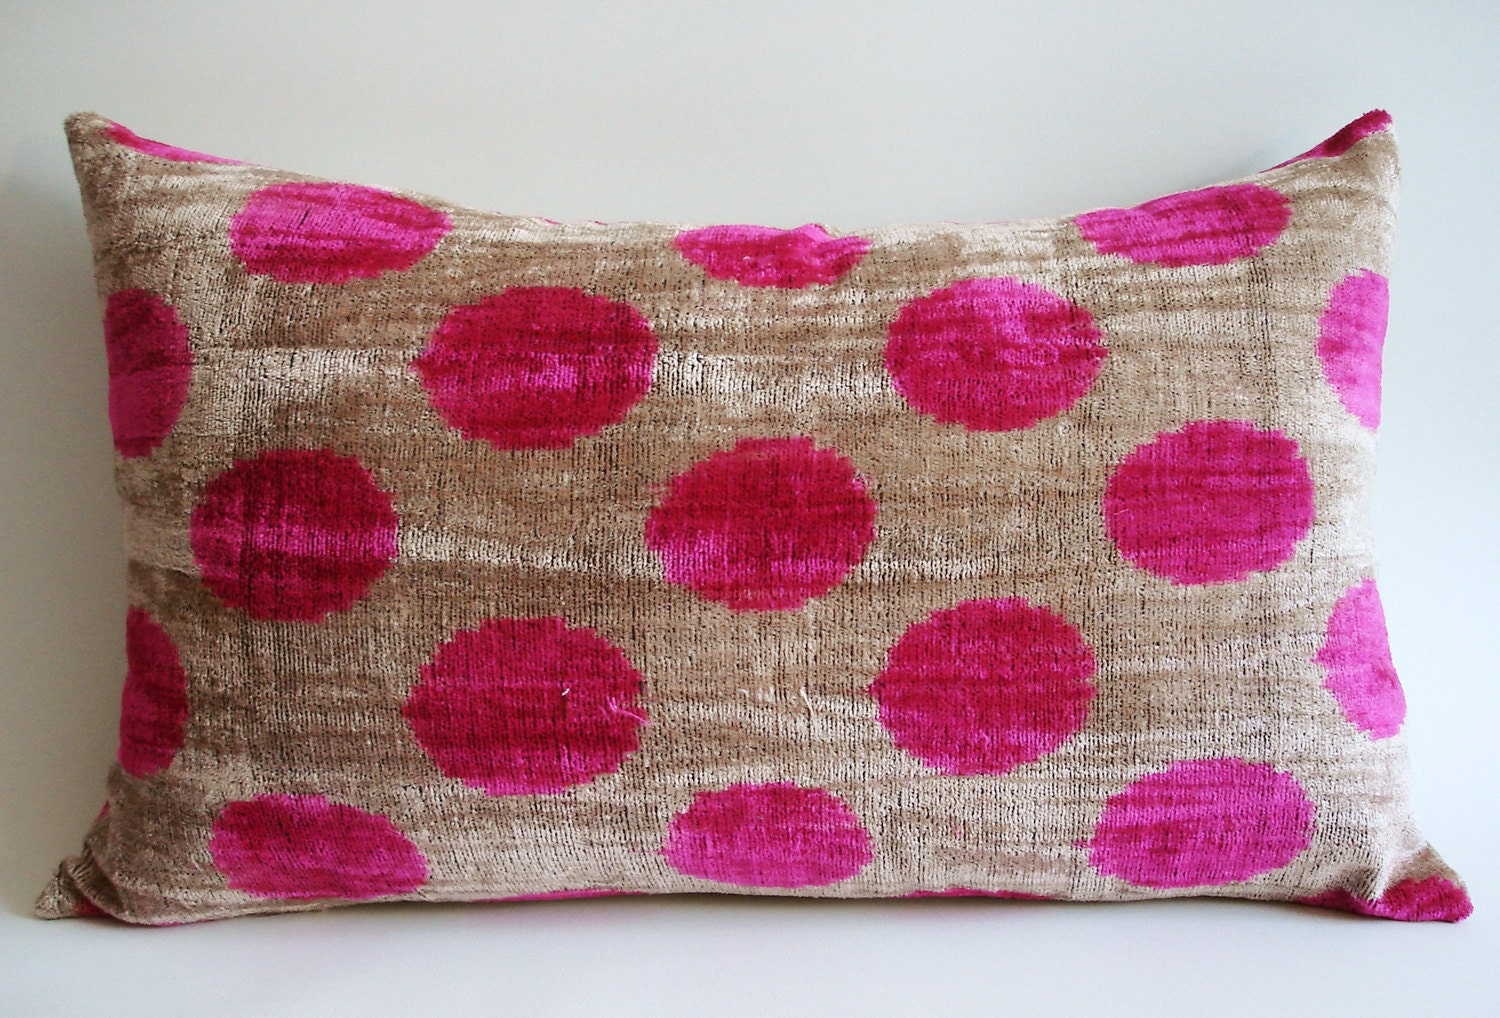 Sukan / SALE - Soft Hand Woven - Silk Velvet Ikat Pillow Cover - 14x22